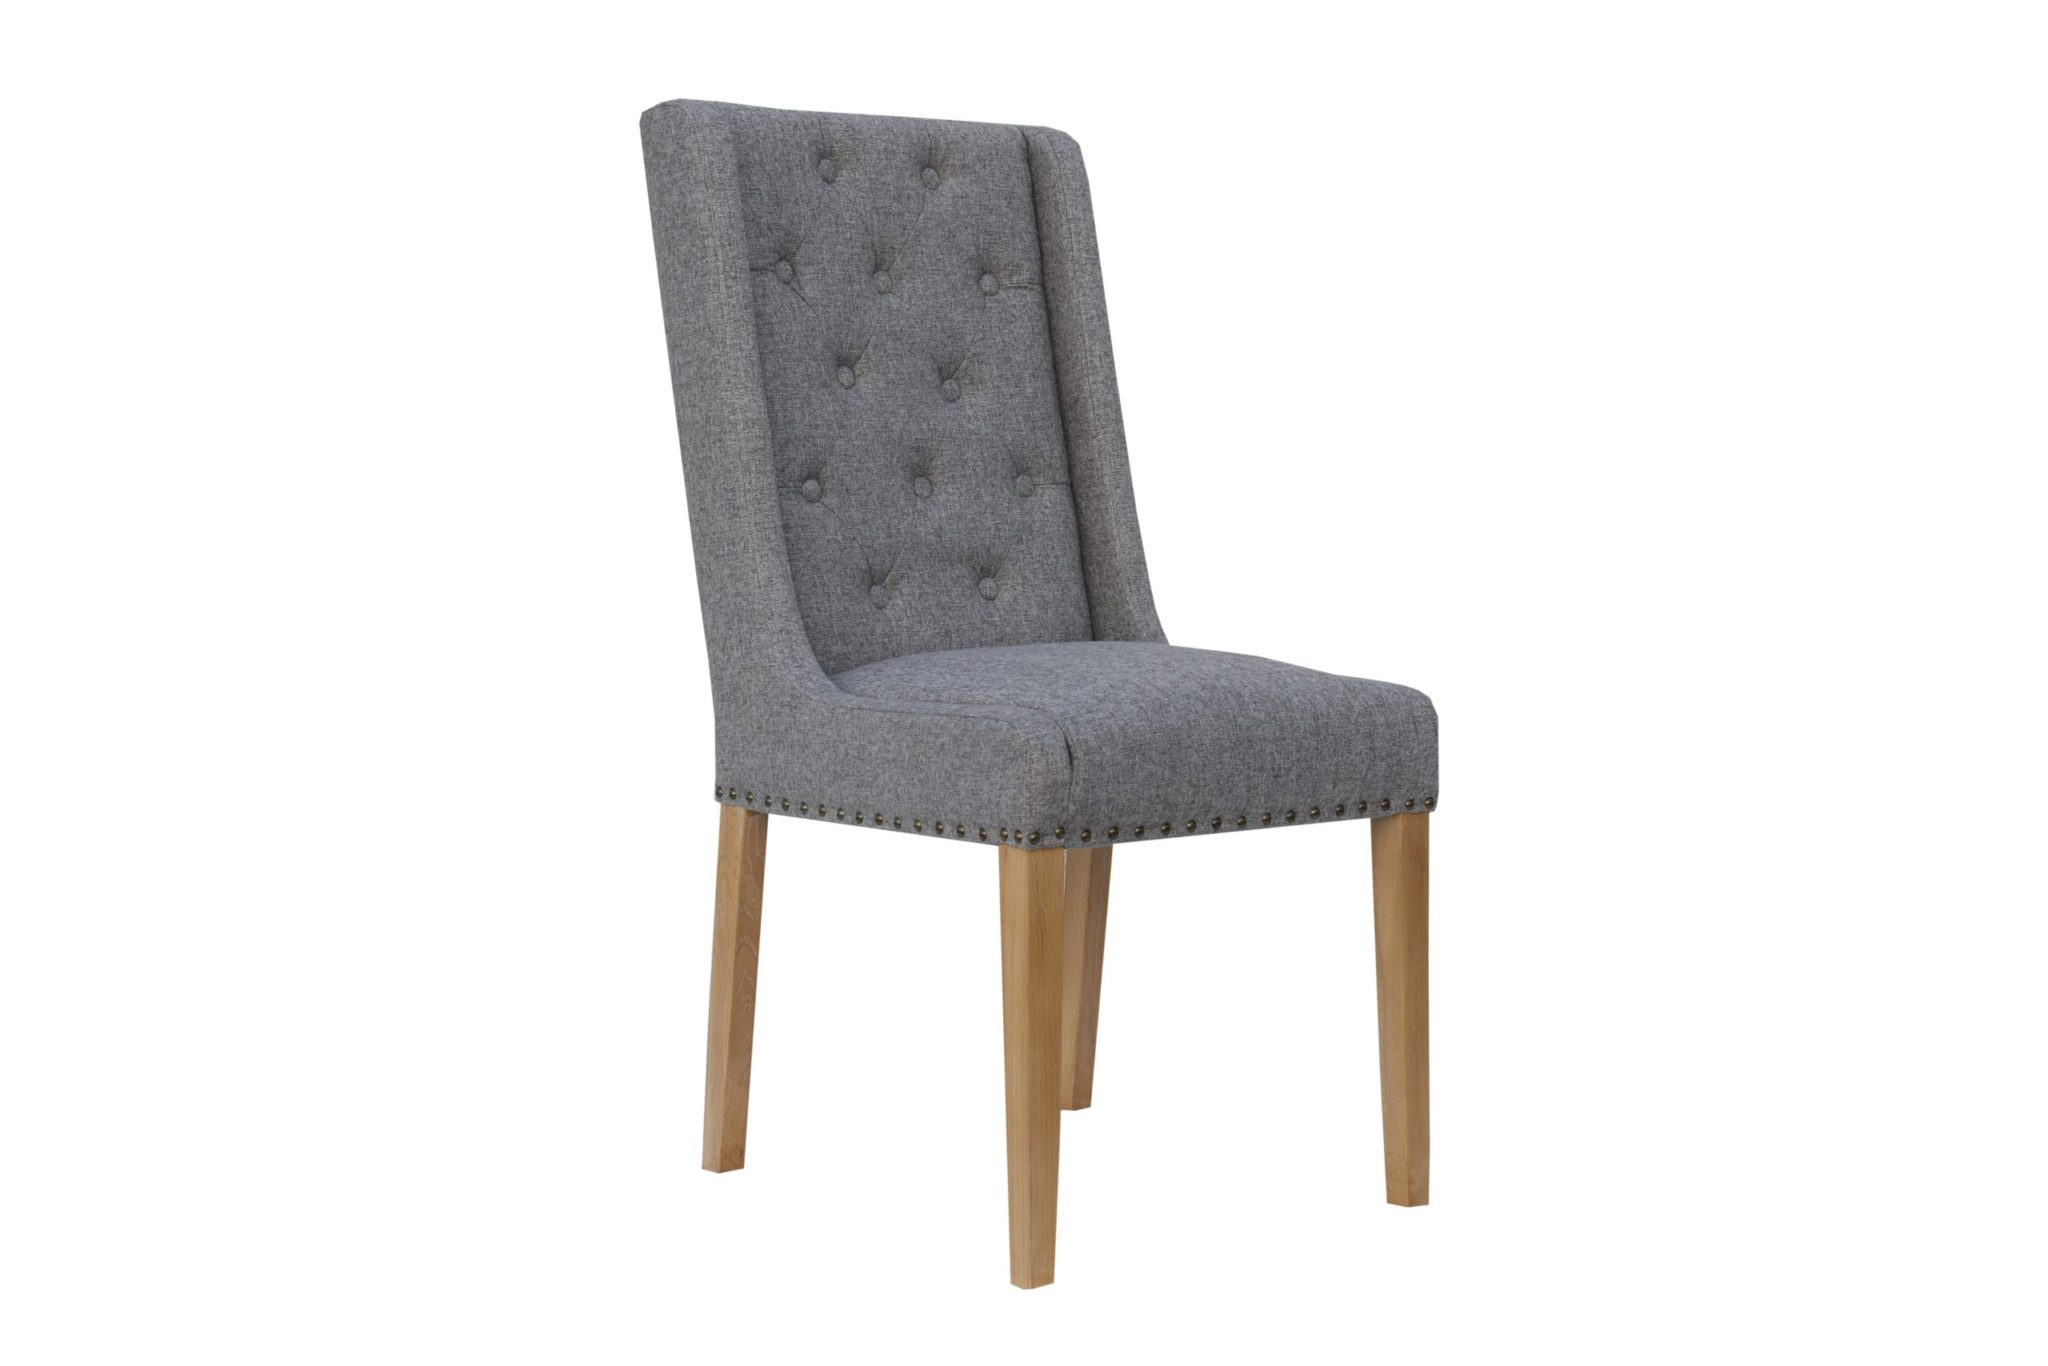 Button back studded dining chair with side supports